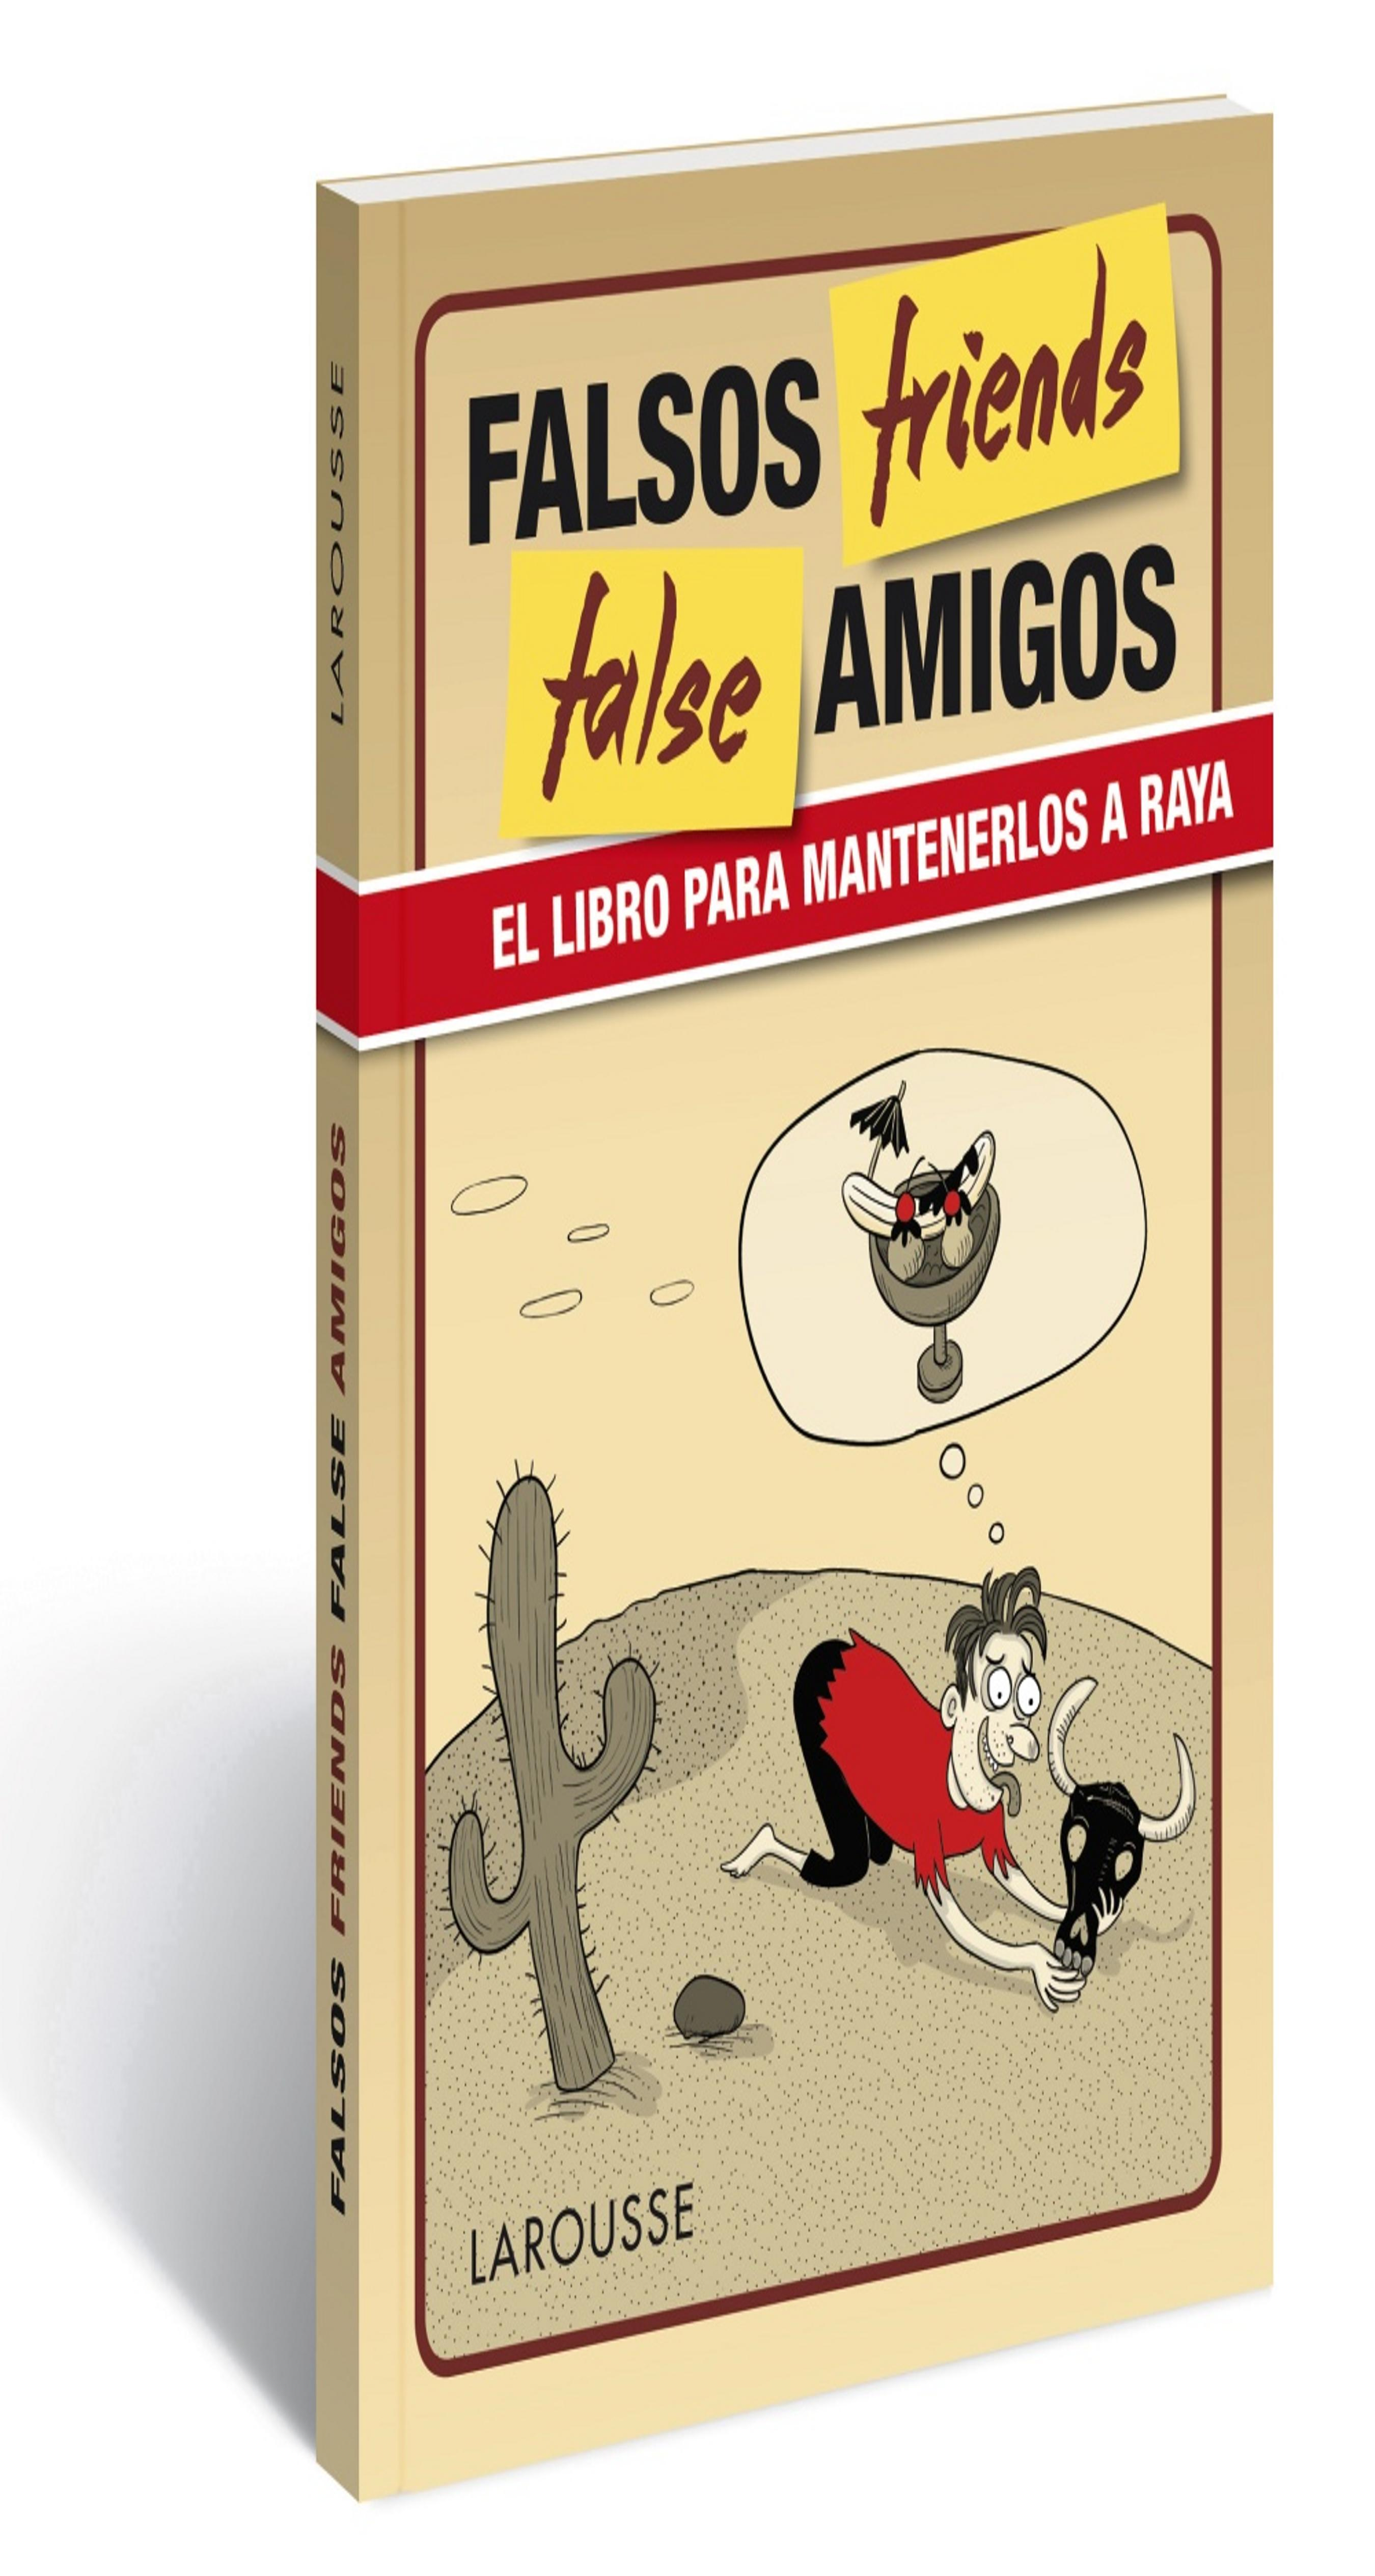 FALSOS AMIGOS / FALSE FRIENDS